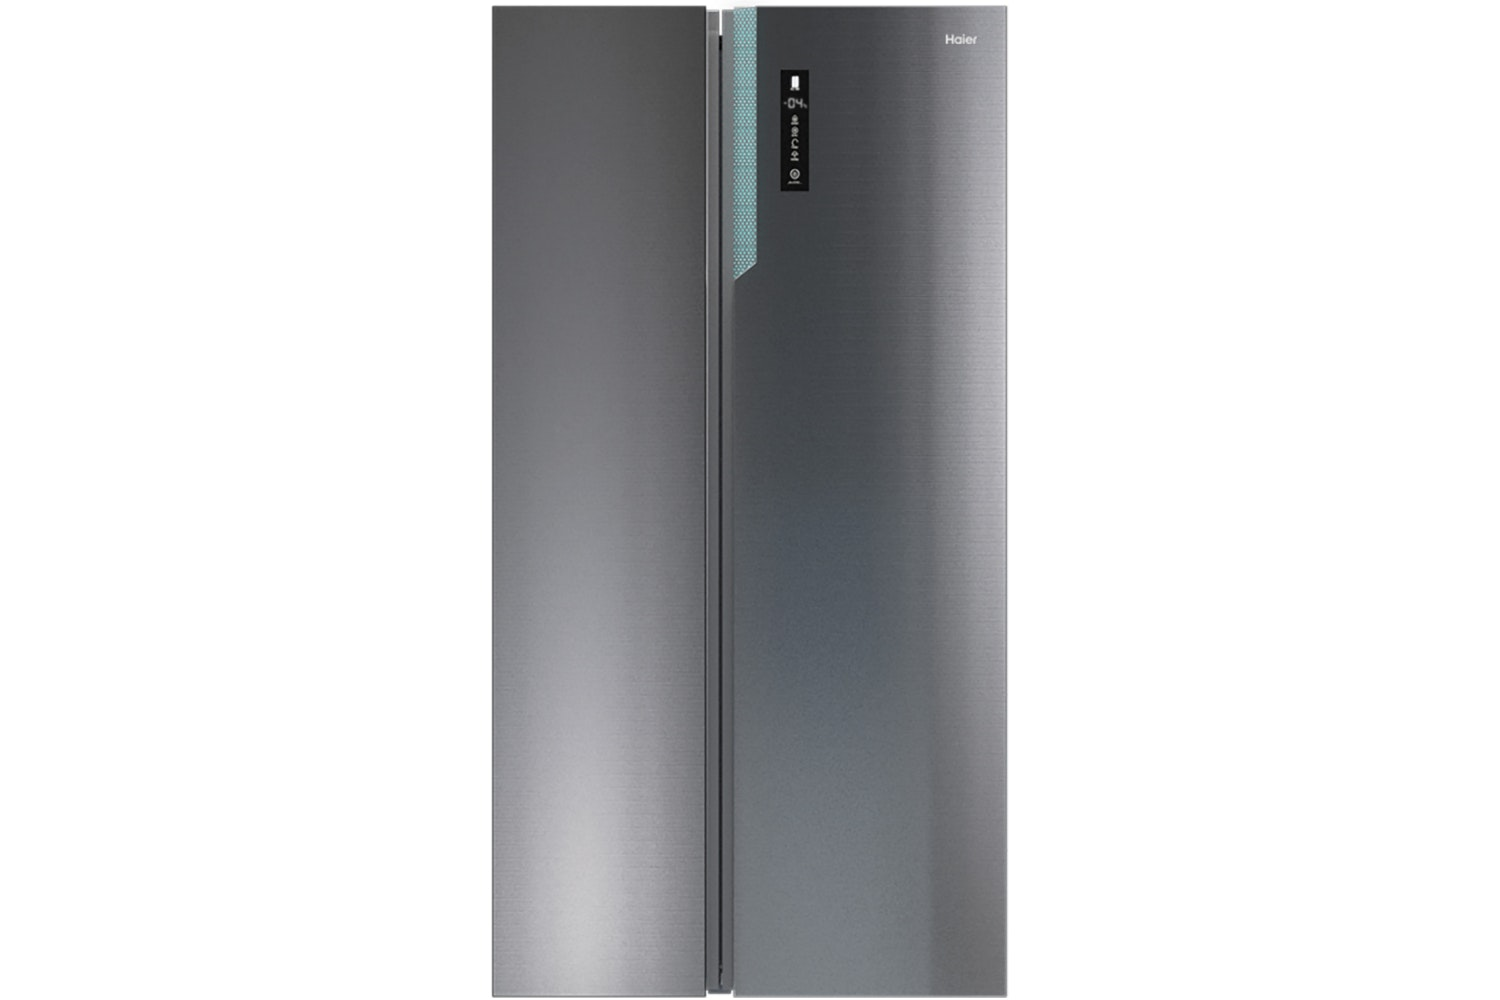 Haier S100 Side by Side Fridge Freezer | HRF800DGS8